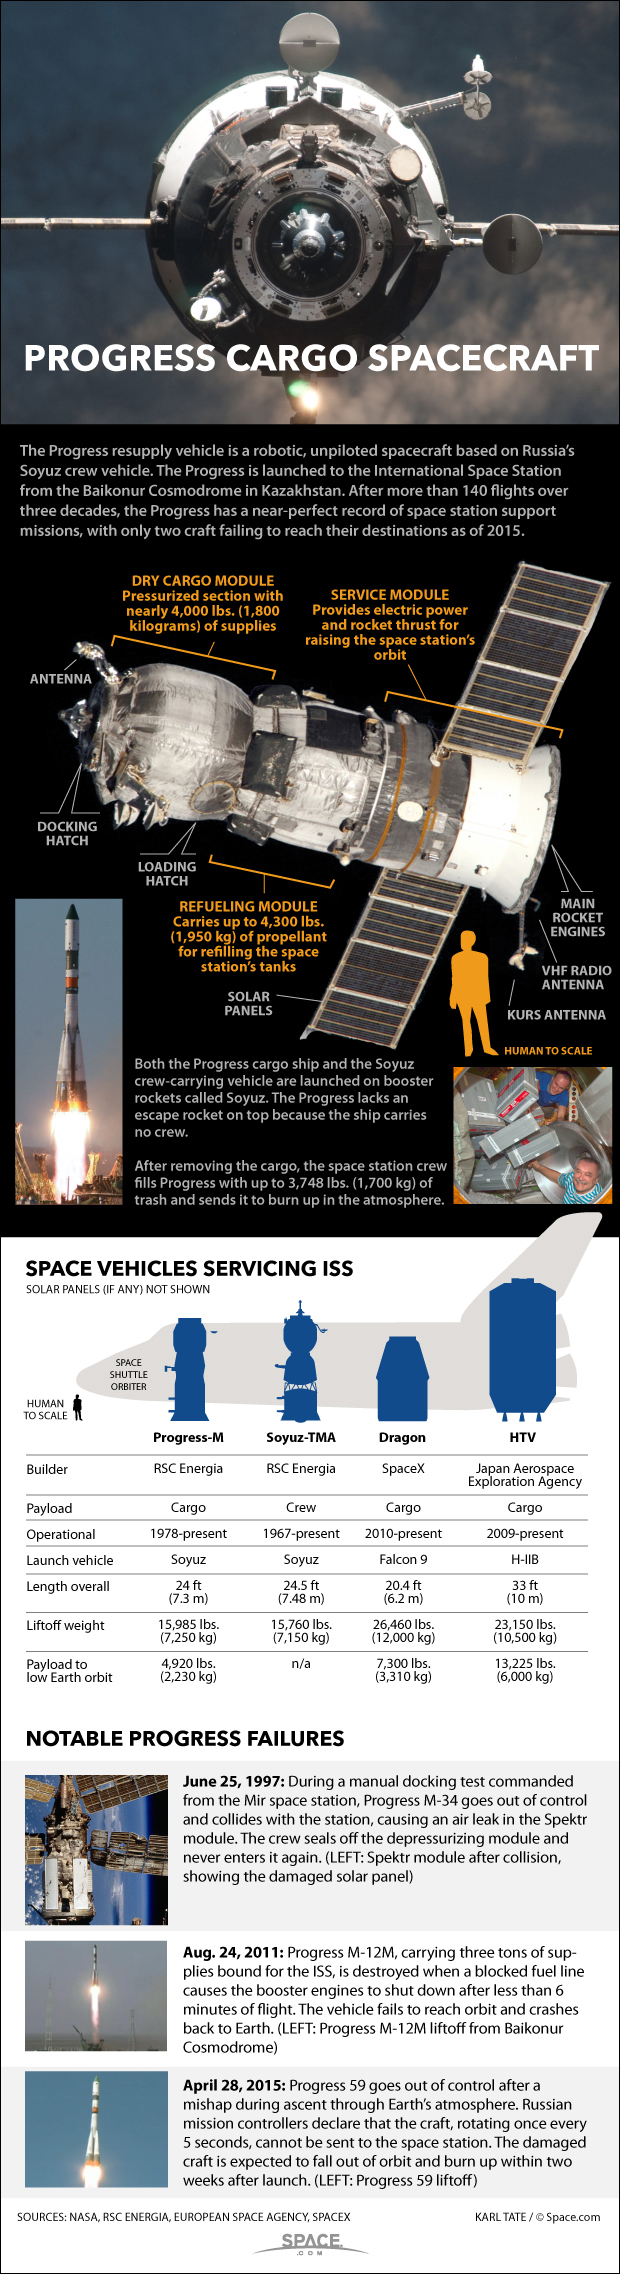 Russia's Progress Cargo Spacecraft